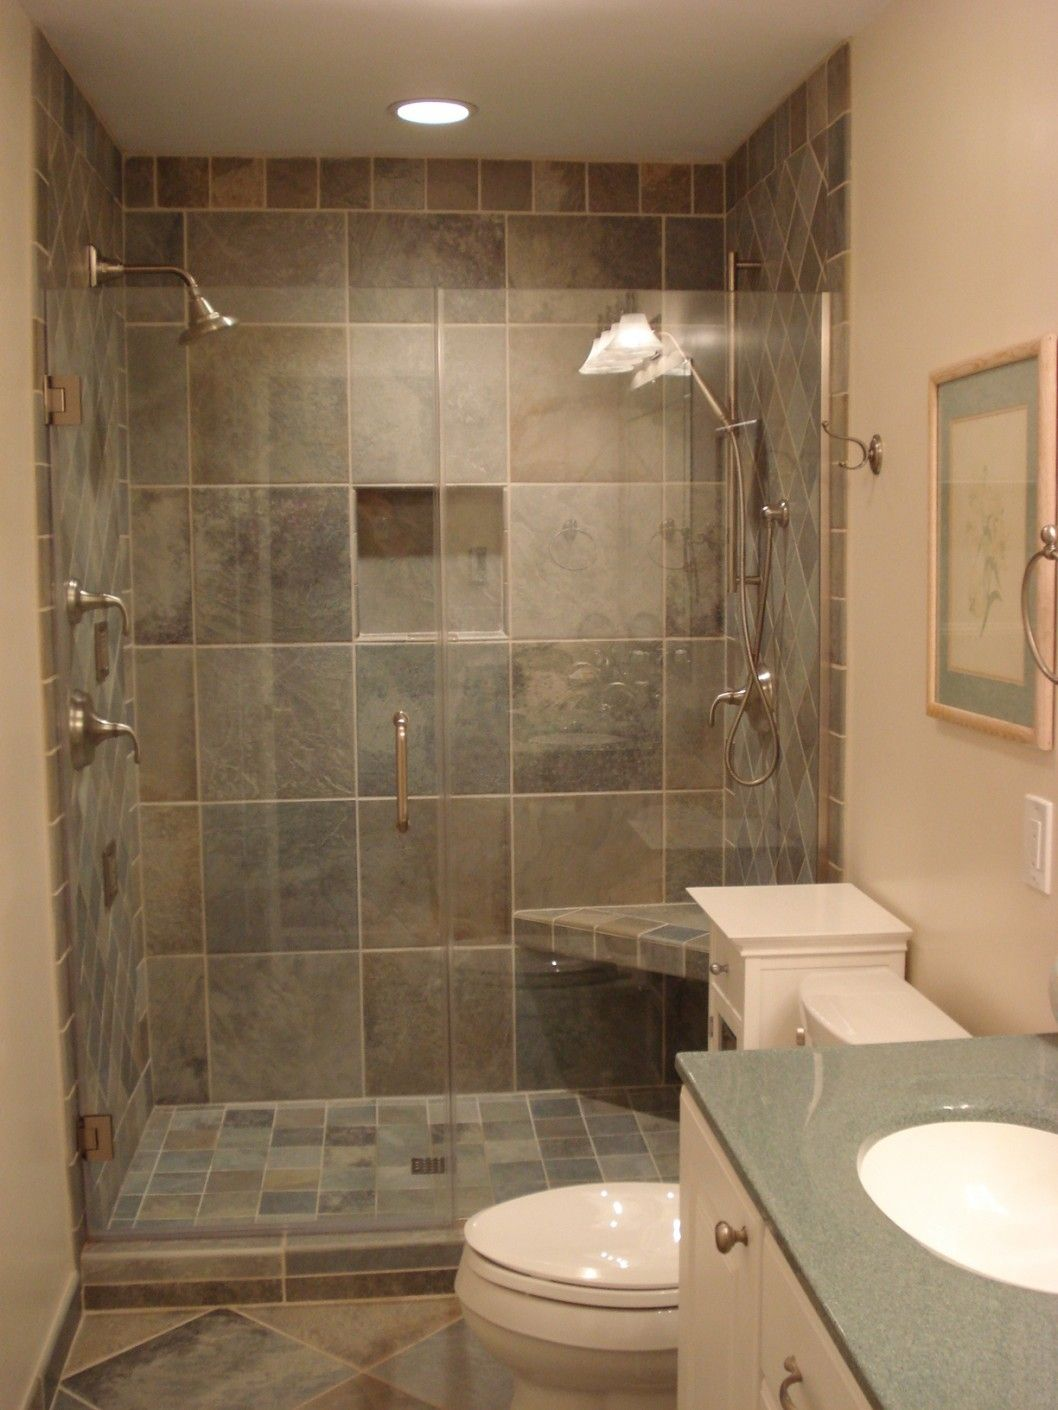 Bathroom Remodel Cost Orange County best of ideas, remodel bathroom tub and how to remodel my bathroom